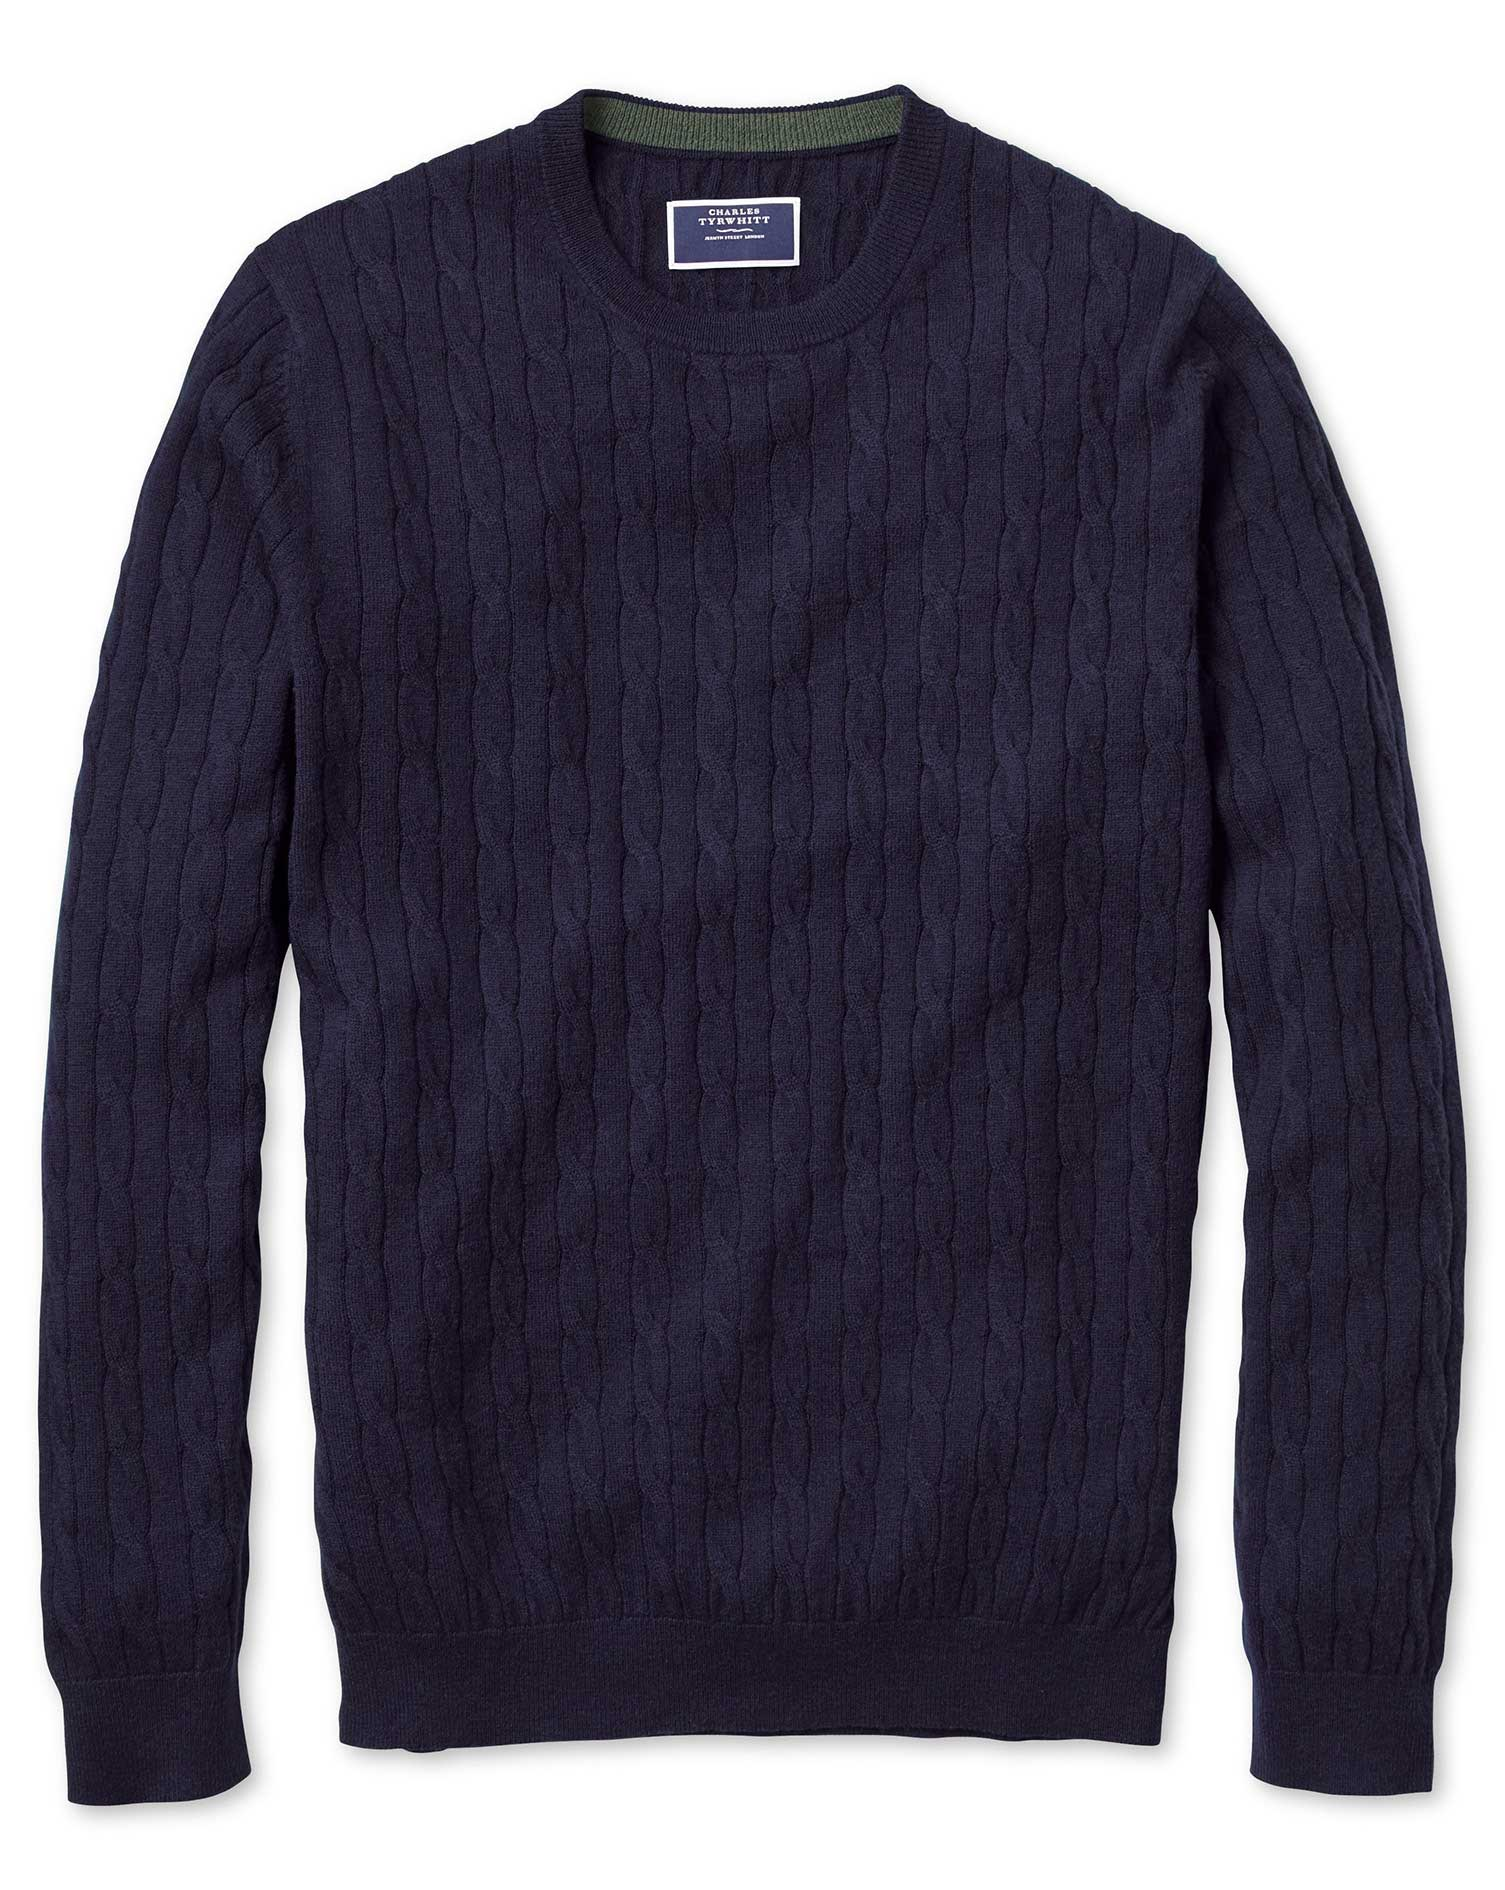 Navy Crew Neck Lambswool Cable Knit Jumper Size XXXL by Charles Tyrwhitt